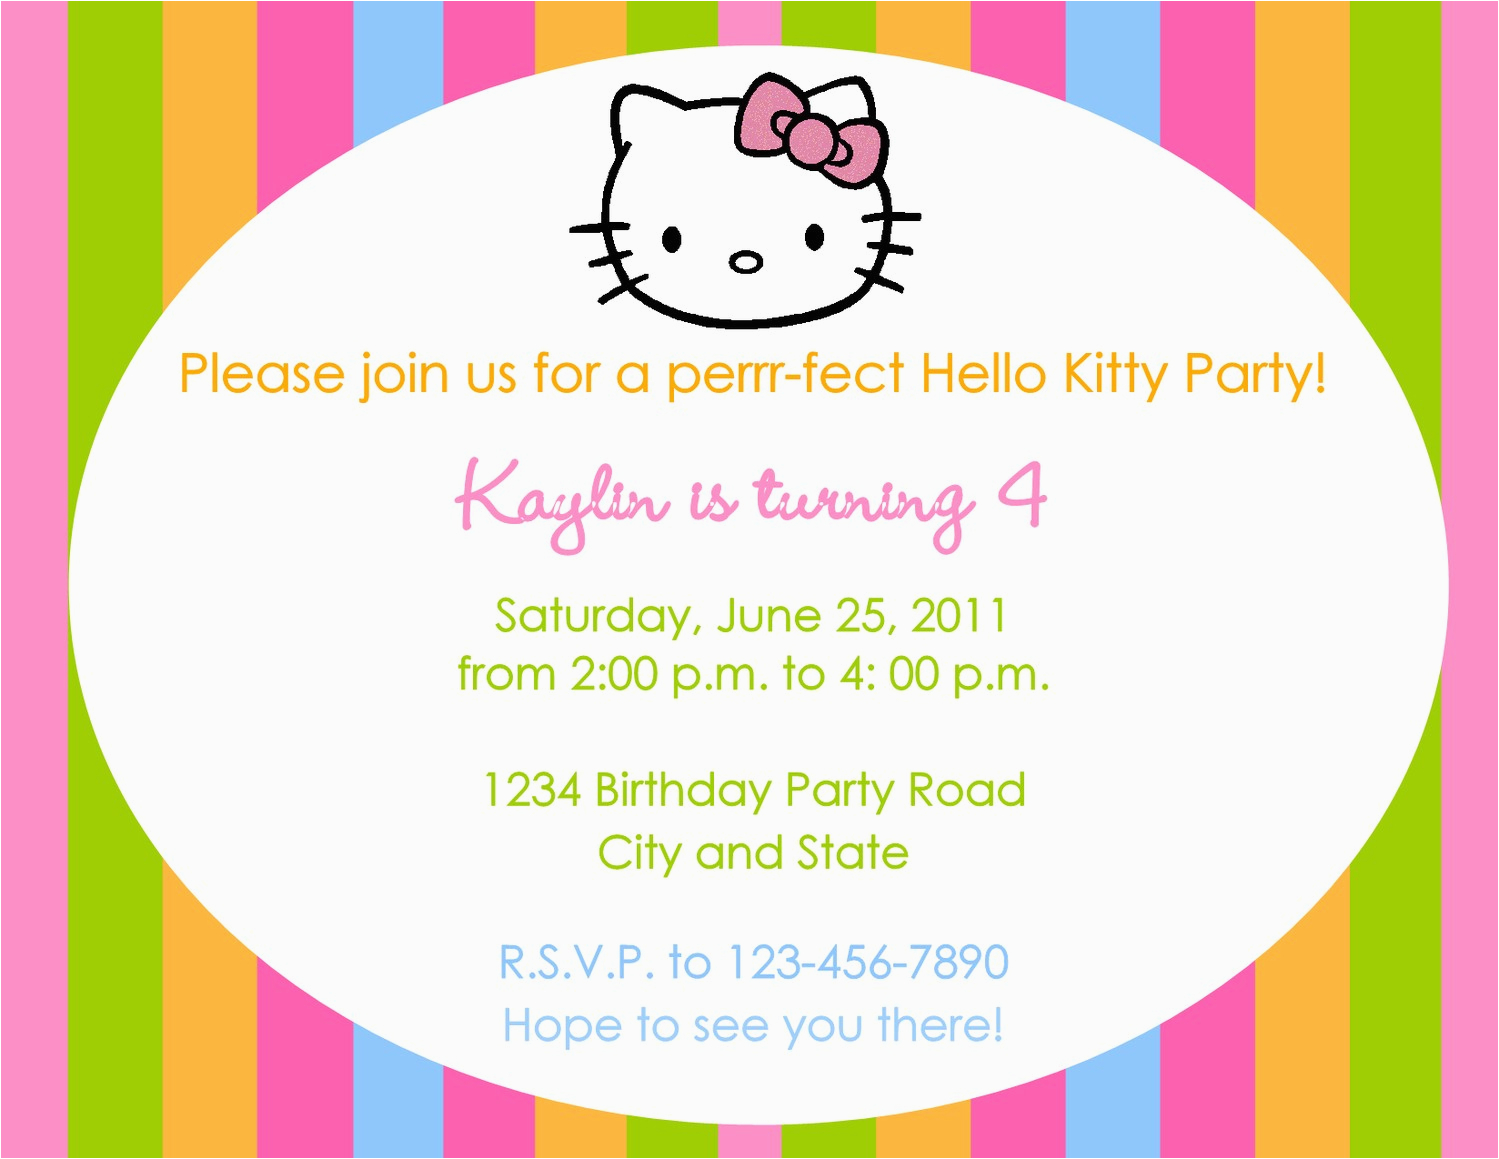 Invitation To A Birthday Party Text Birthdaybuzz Jpg 1499x1159 Invitations Hello Kitty Wording